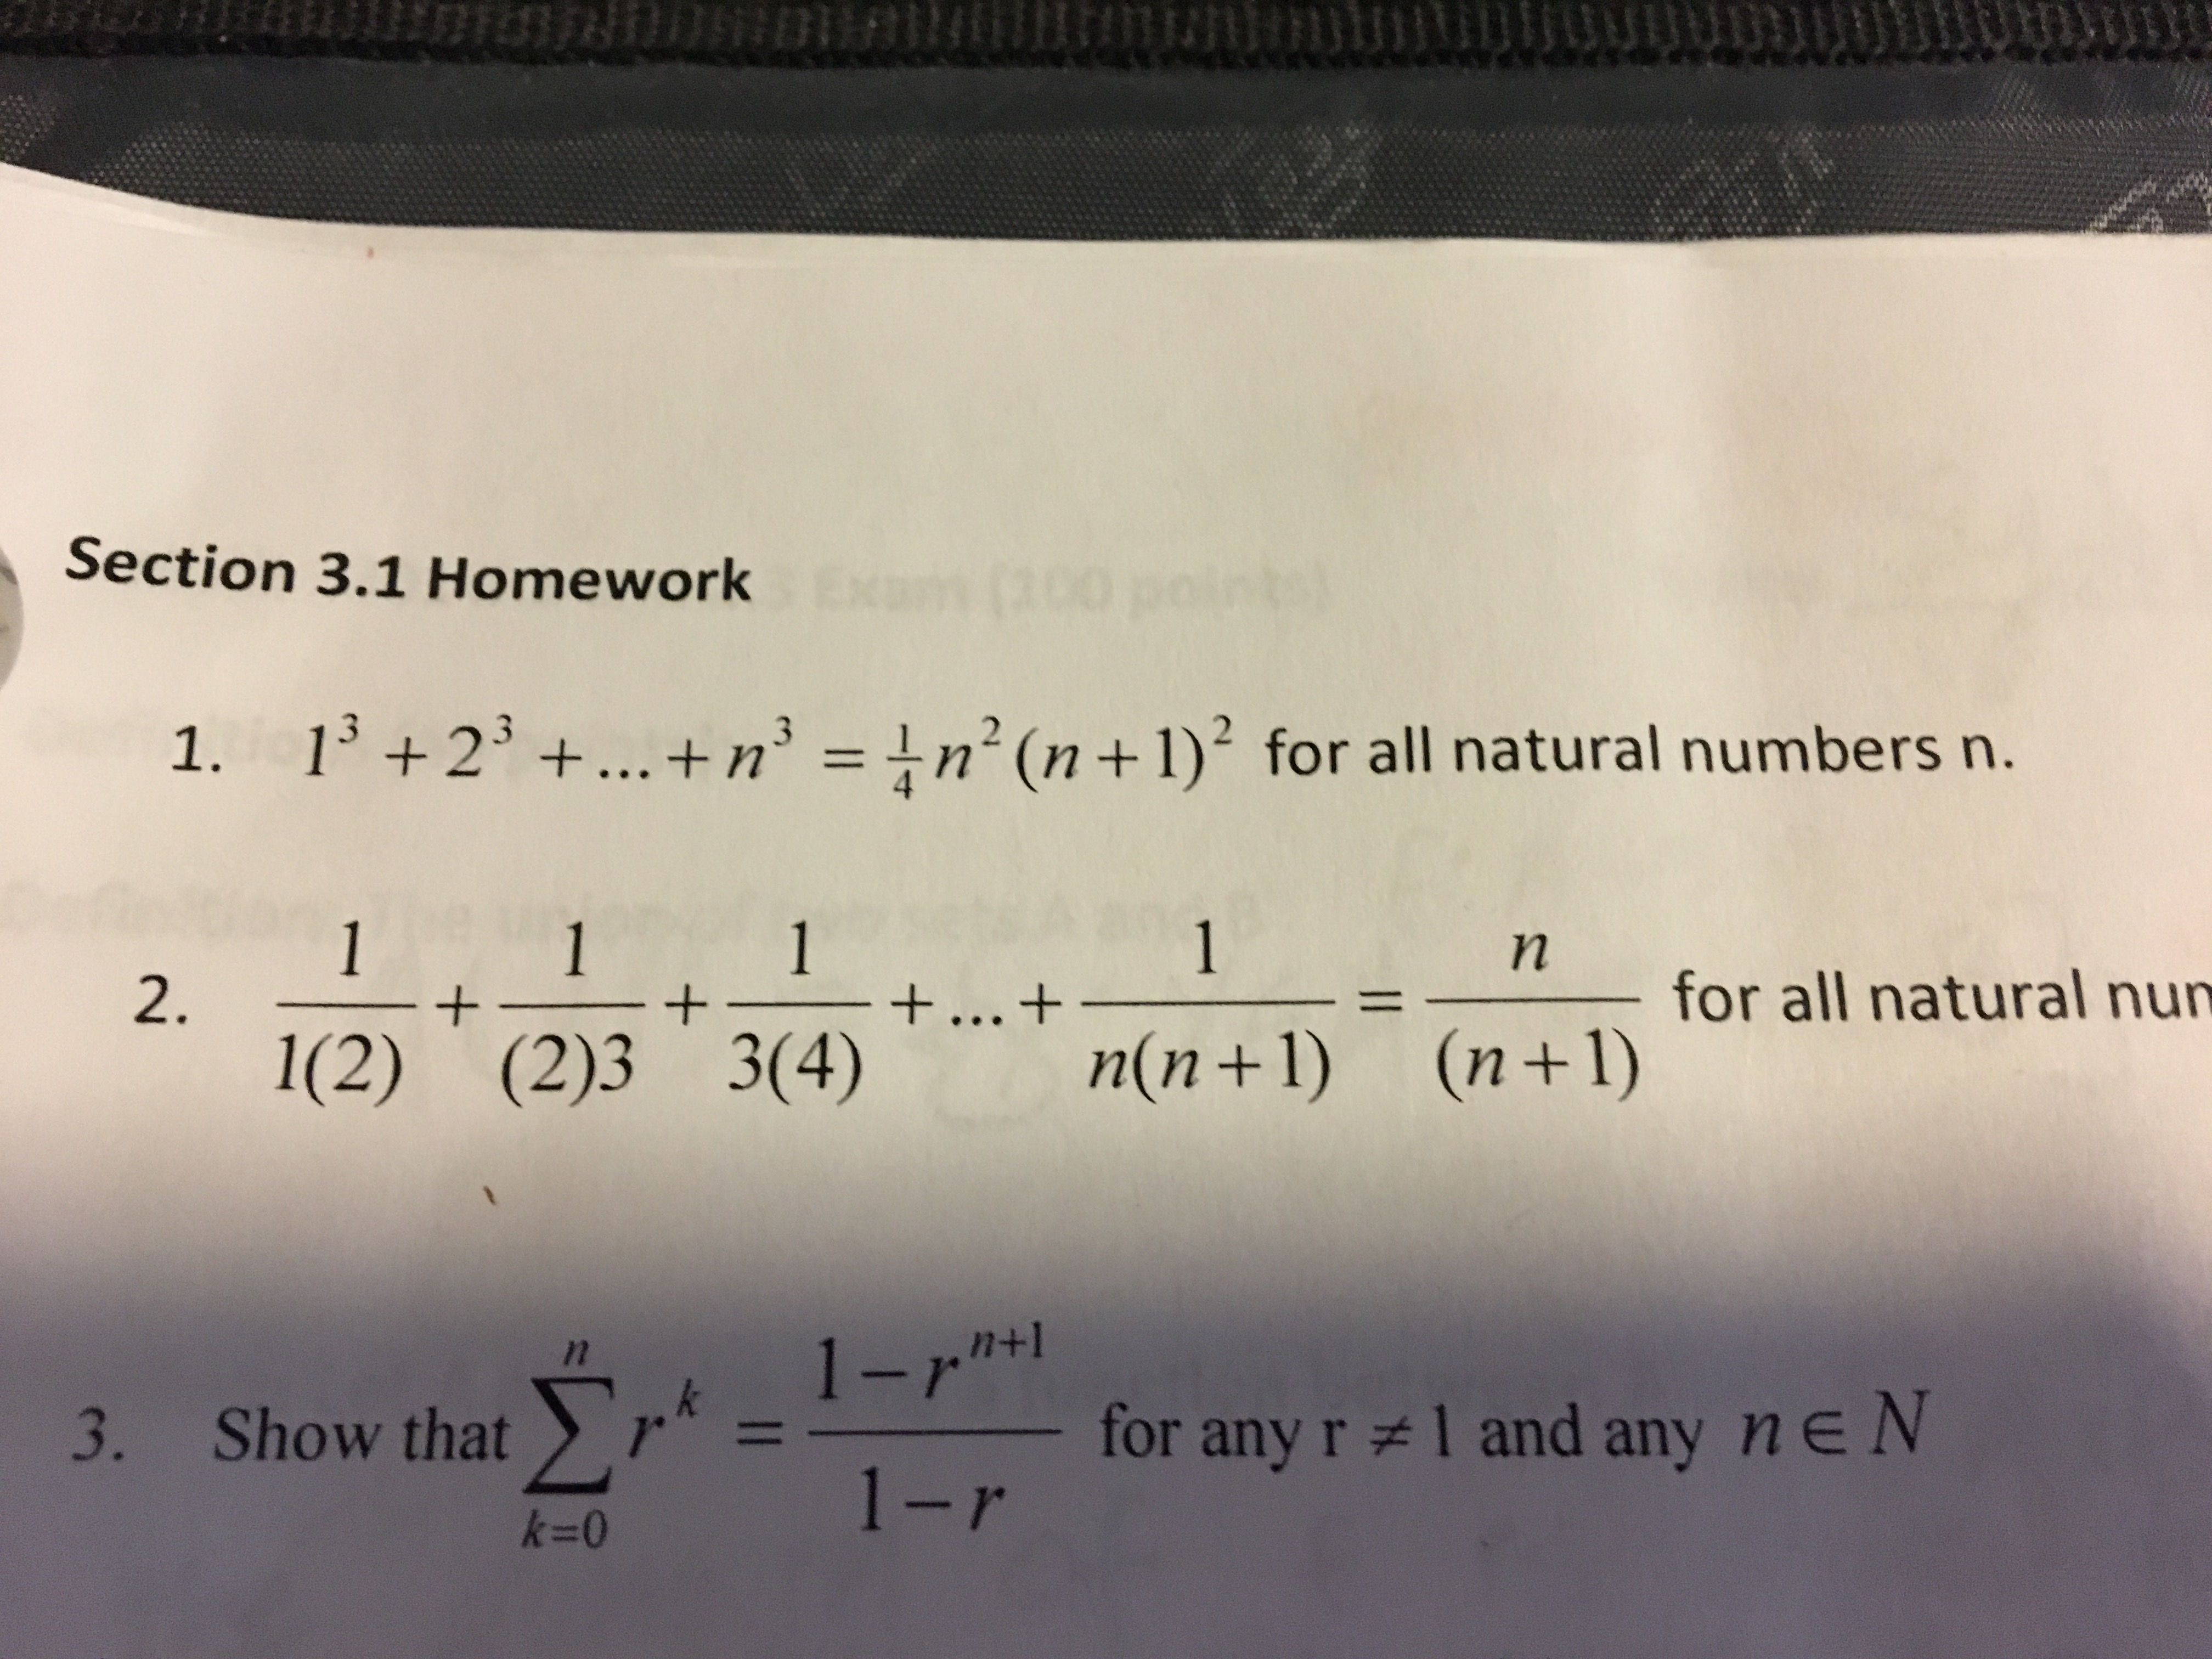 We Section 3.1 Homework 1. 1+2+... +n' = 1n2 (n +1) for all natural numbers n. 1 +... + n(n + 1) 1 1 + 1 n 2. + for all natural num 1(2) (2)3 3(4) (n 1) (n+1) n+1 - for any r 1 and any ne N 1-r 3. Show that